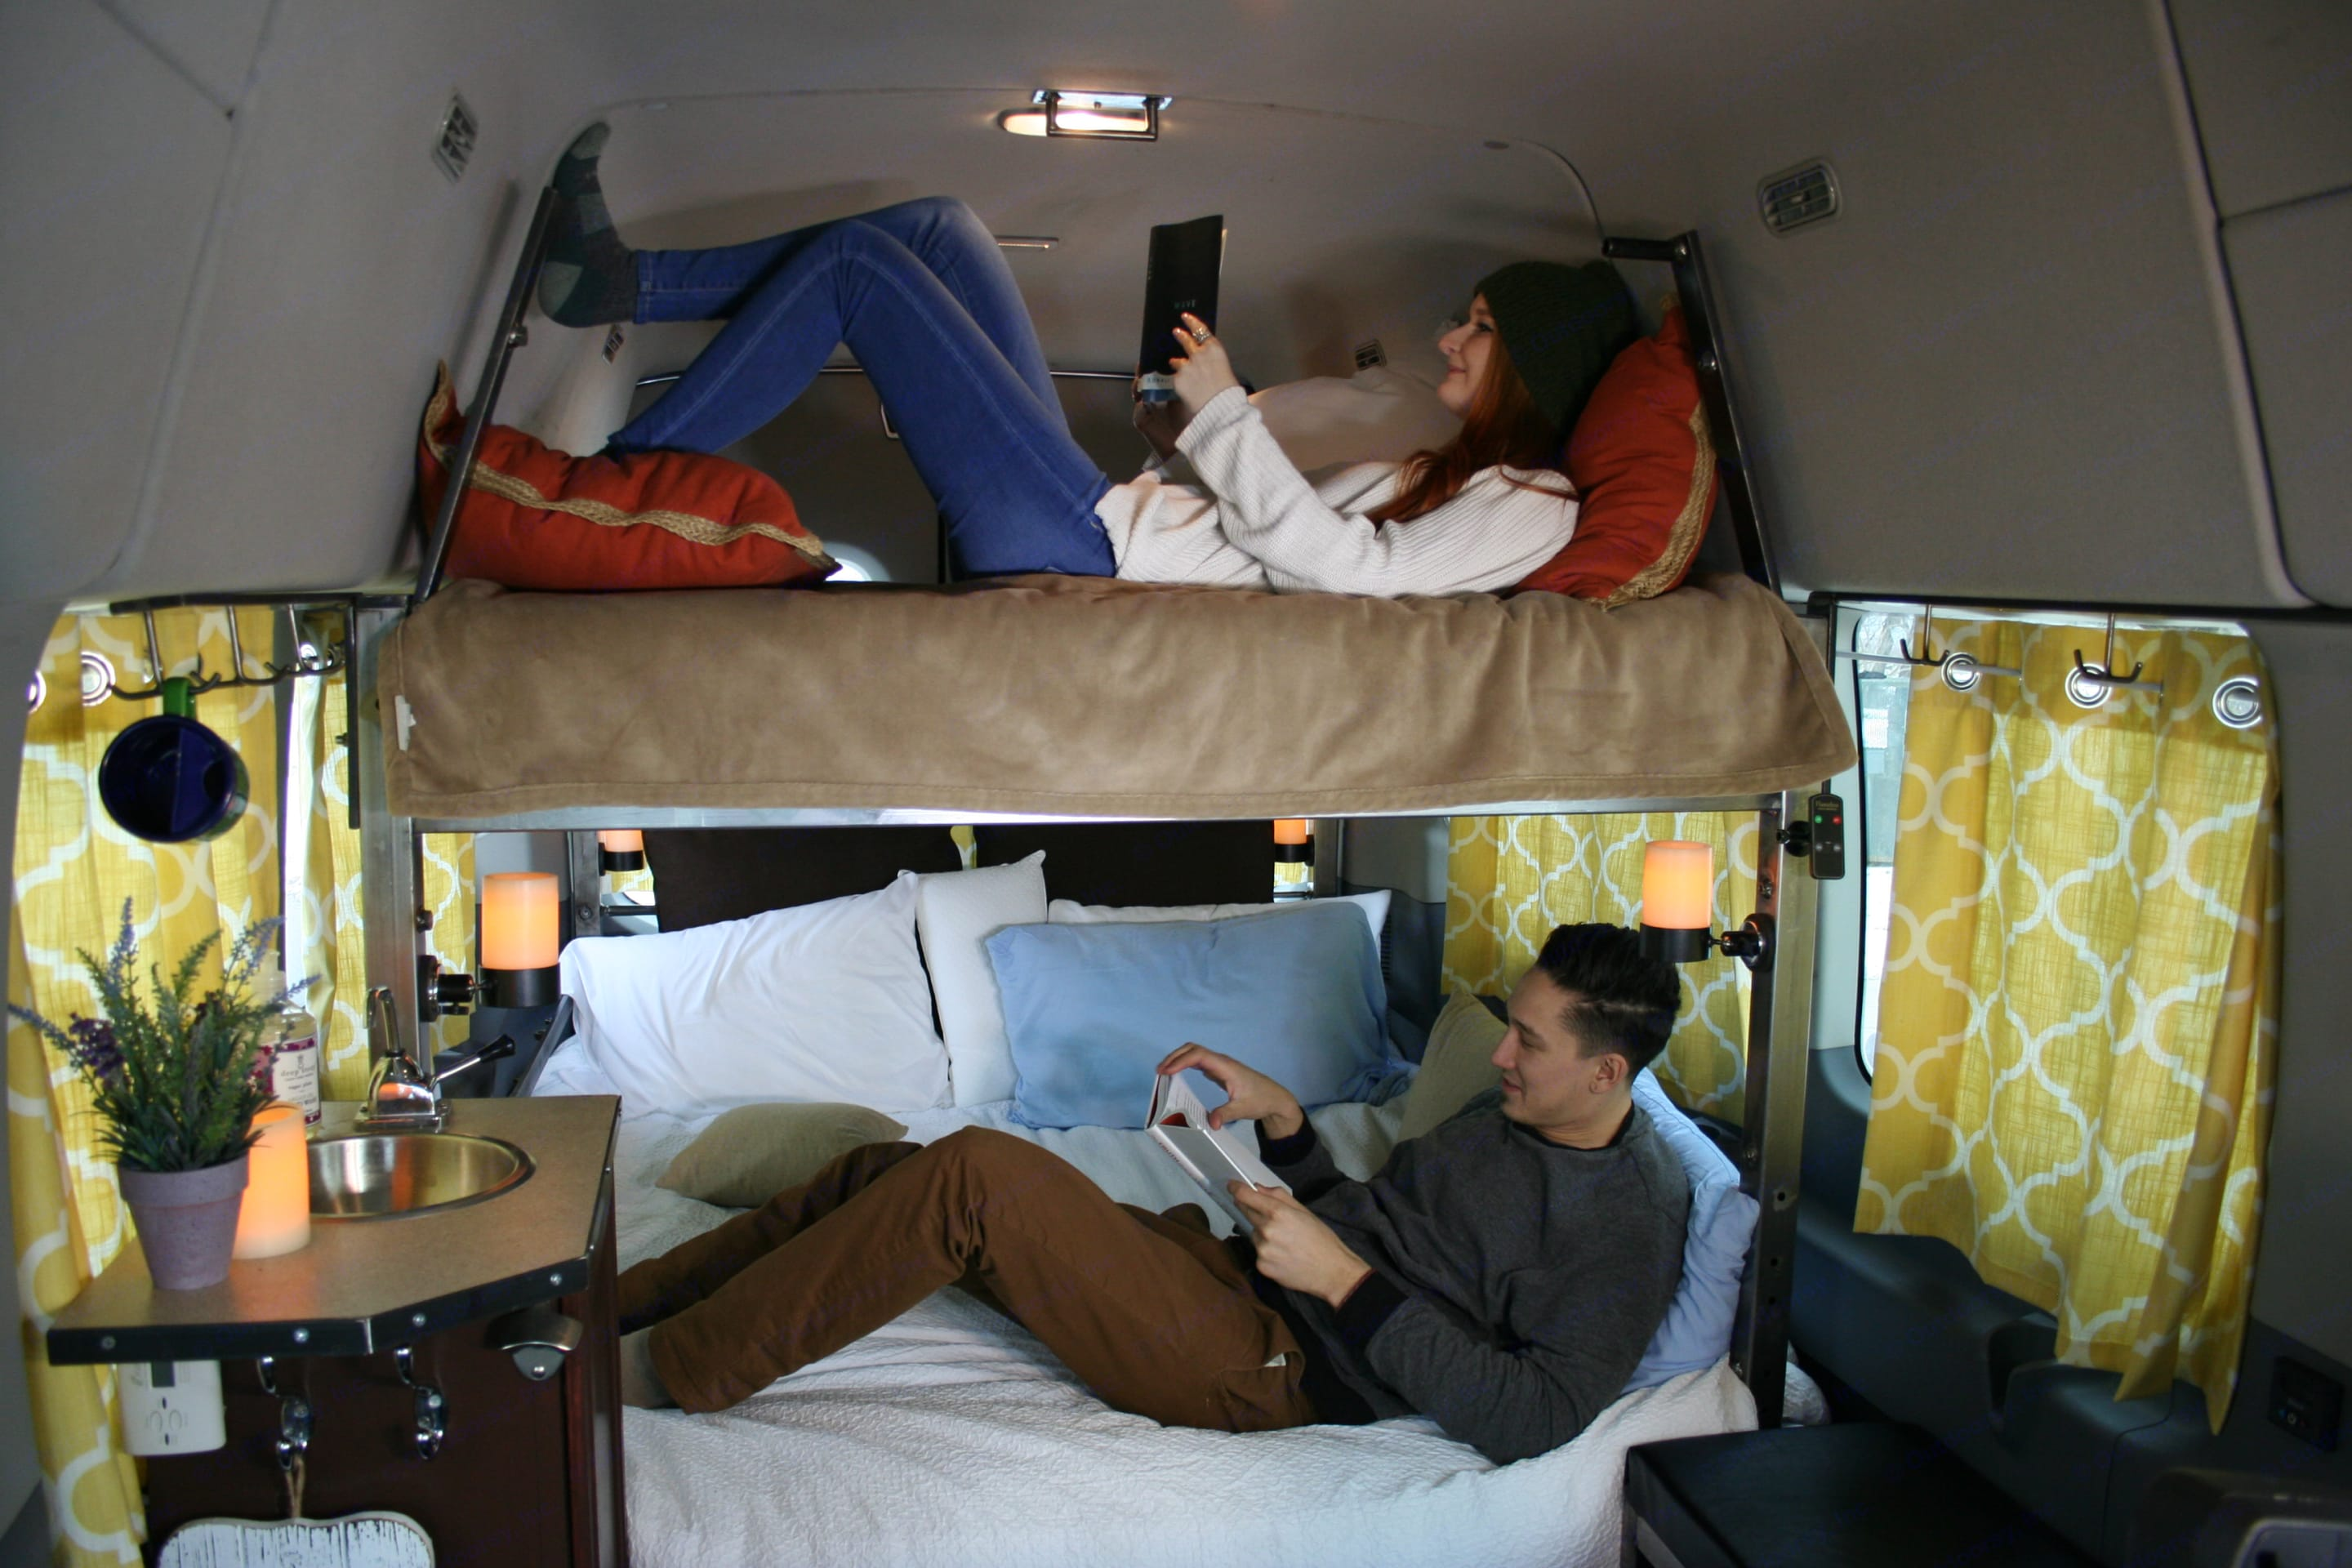 Two queen memory foam mattresses for room for all! Optional hammock for the second row that can fit a small child. . Ford Transit 2019